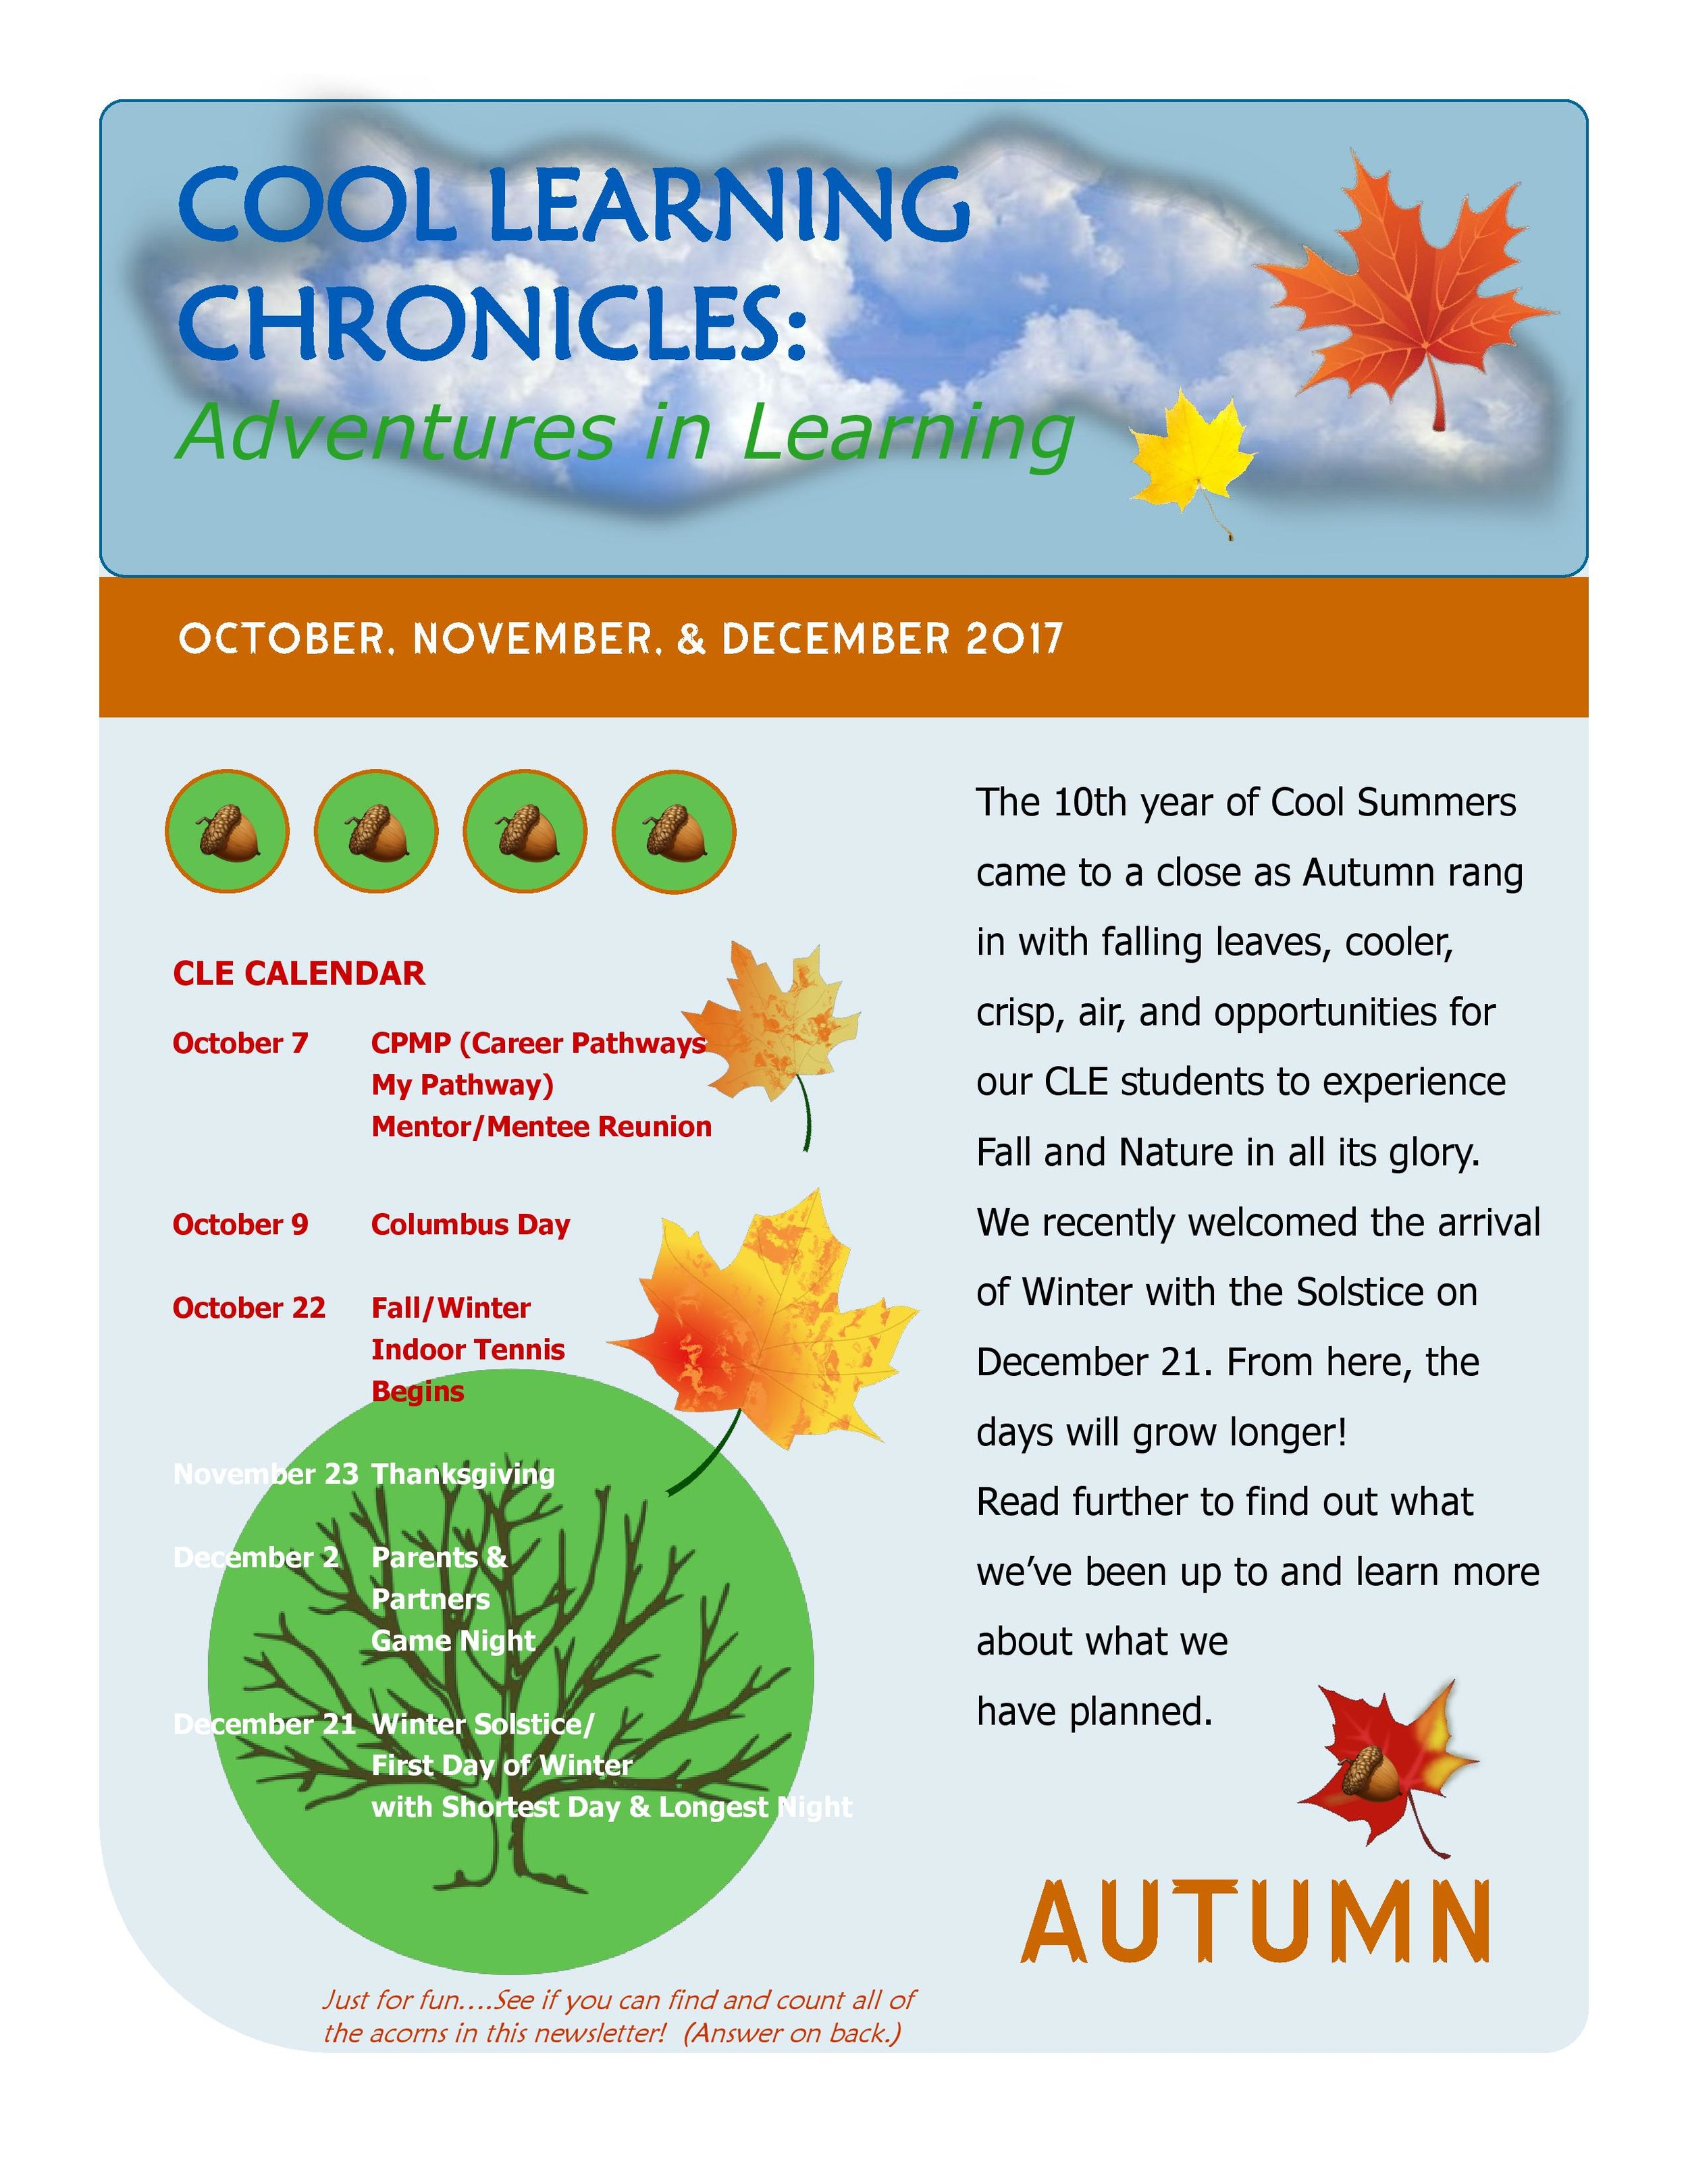 CLE+Chronicles+Autumn+2017-page-001.jpg